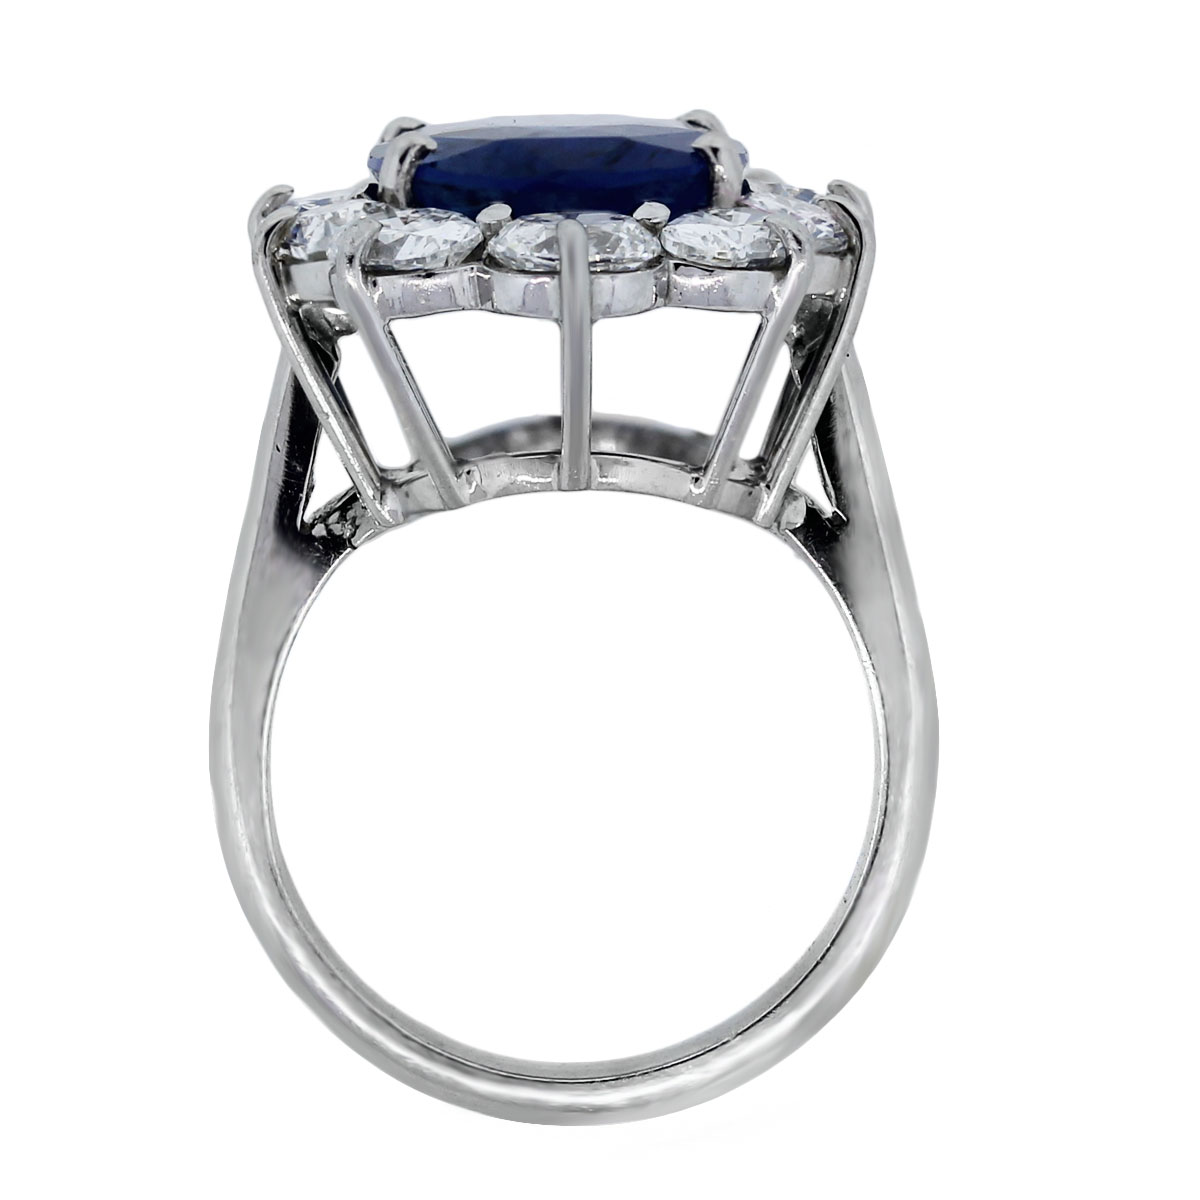 Oval Natural Non Heated Burma Sapphire Diamond Vintage Ring